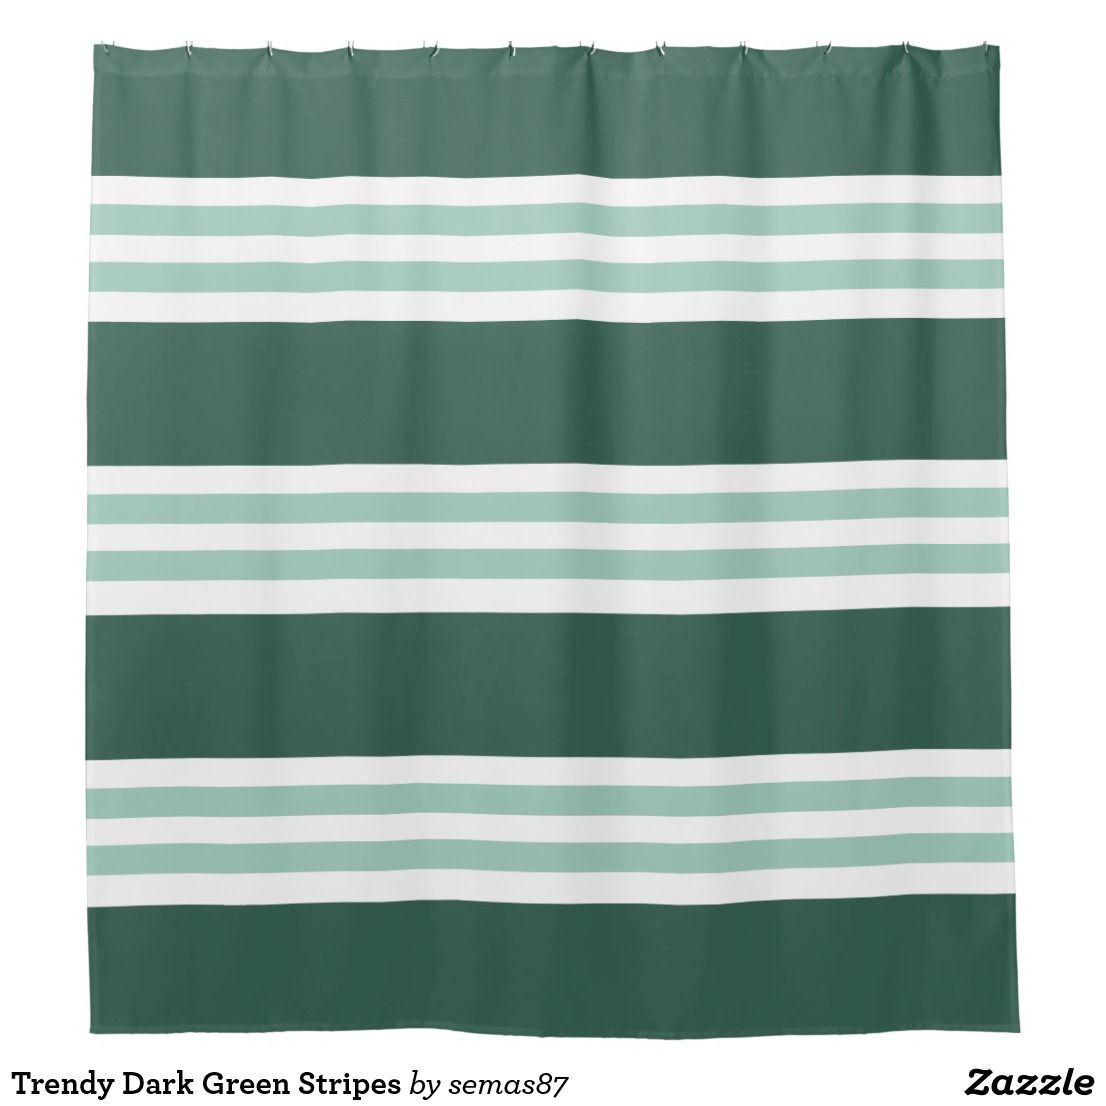 Trendy Dark Green Stripes Shower Curtain Zazzle Com Striped Shower Curtains Green Stripes Curtains